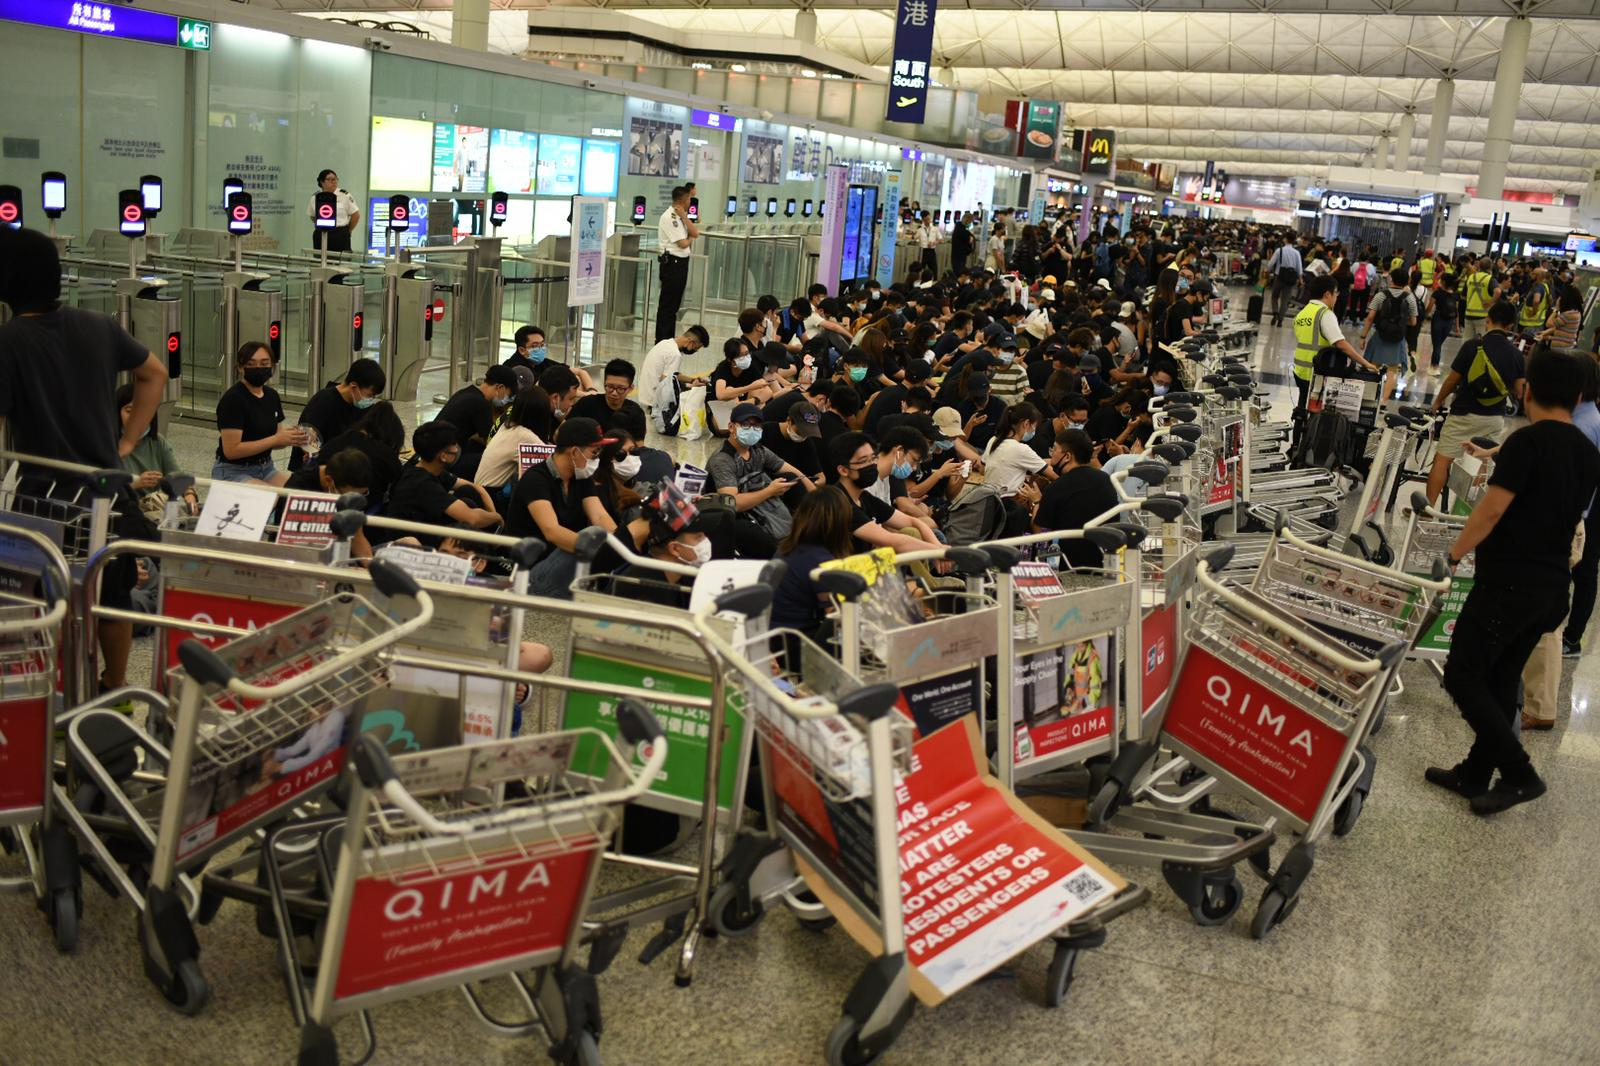 Protesters build a blockade of luggage carts around the entrance to the security area at Hong Kong airport.